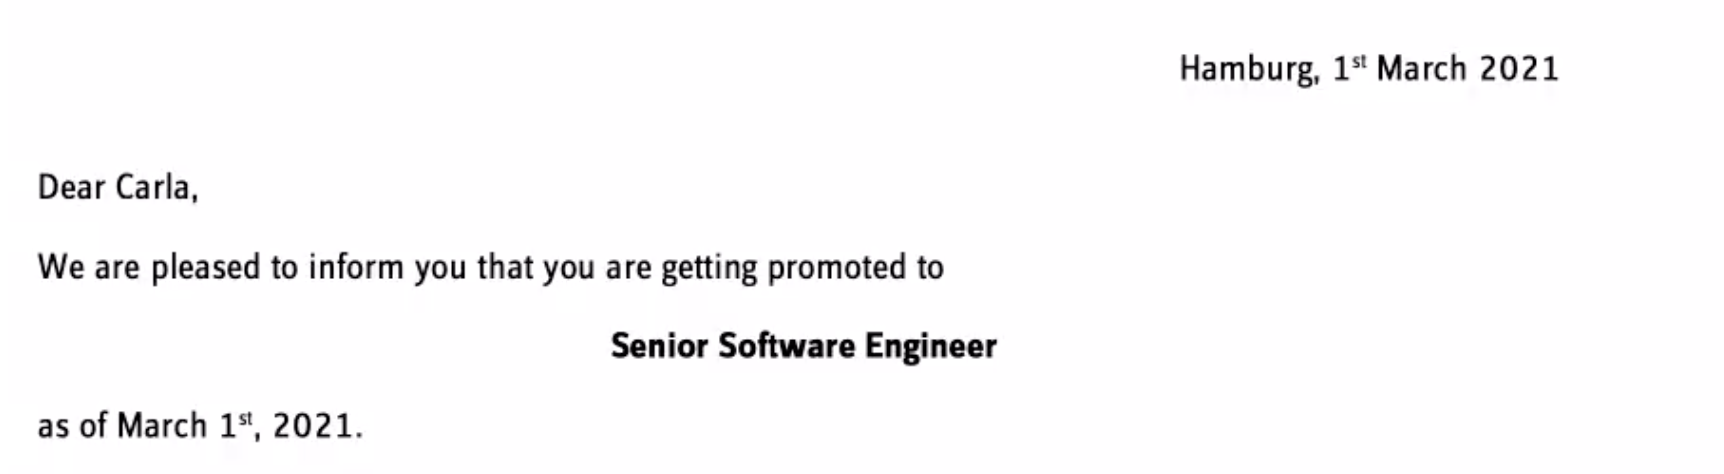 The letter I received from the company promoting me to Senior Software Engineer